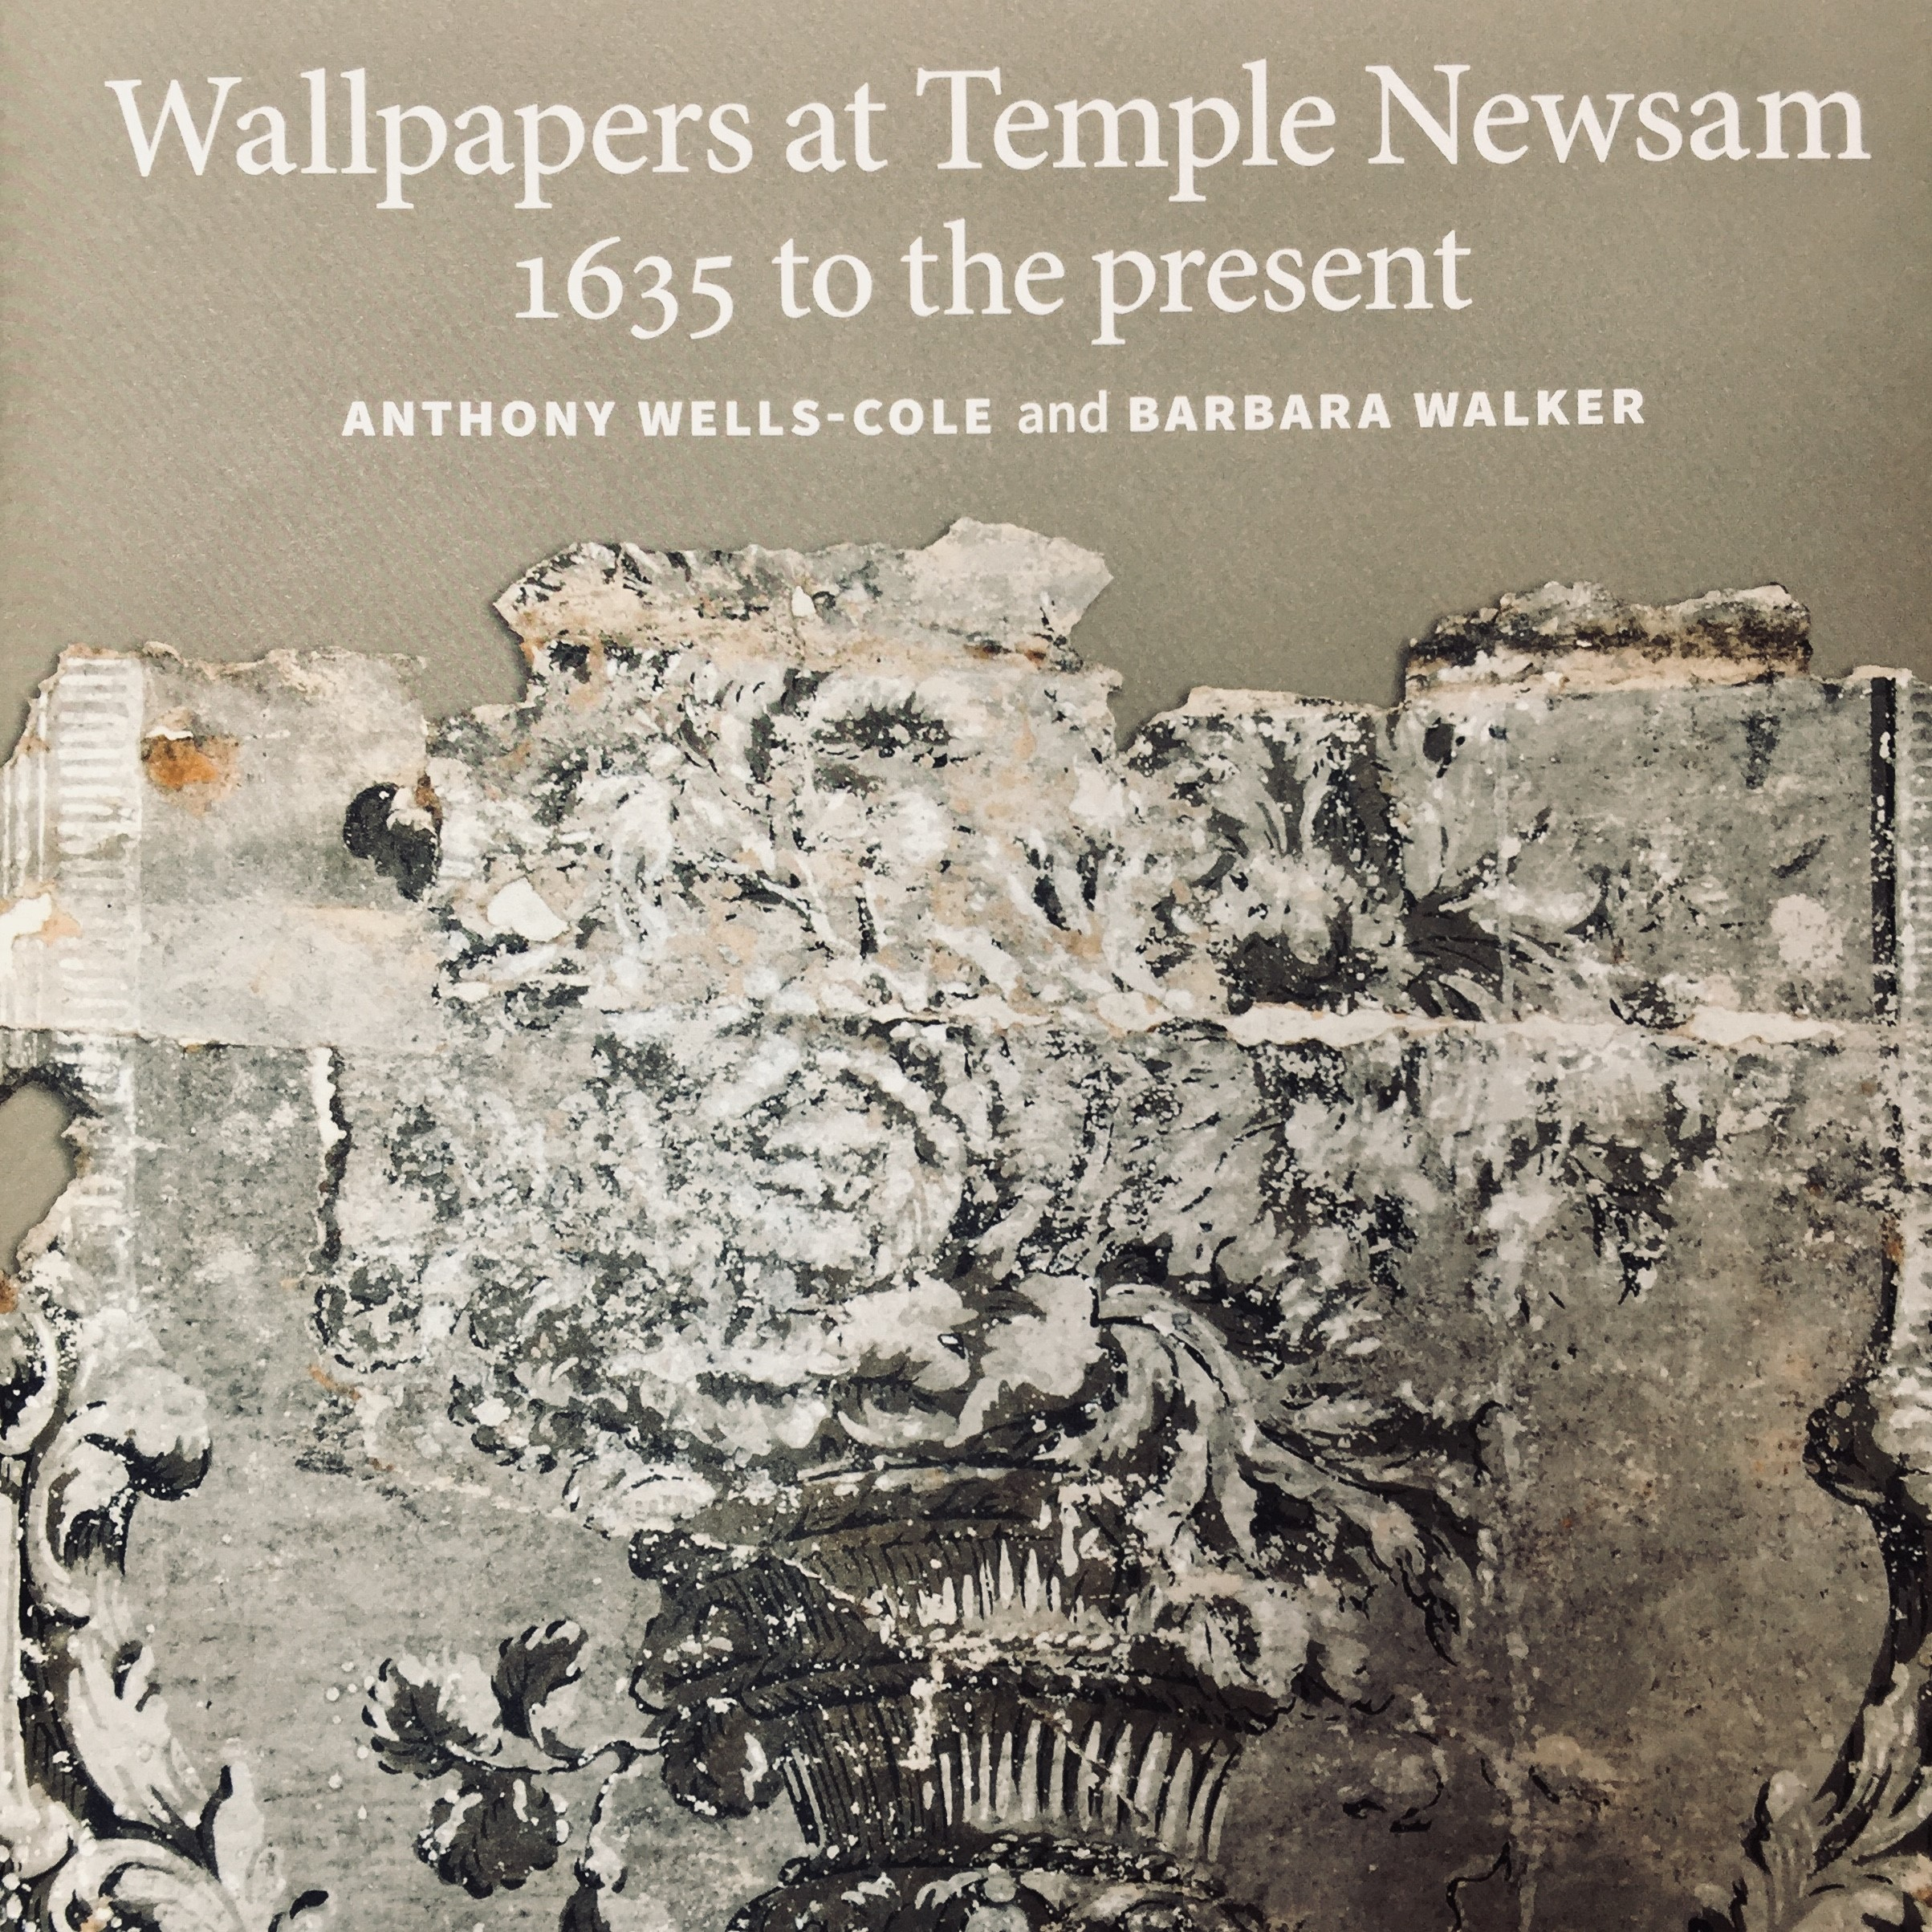 Wallpapers at Temple Newsam: 1635 to the Present